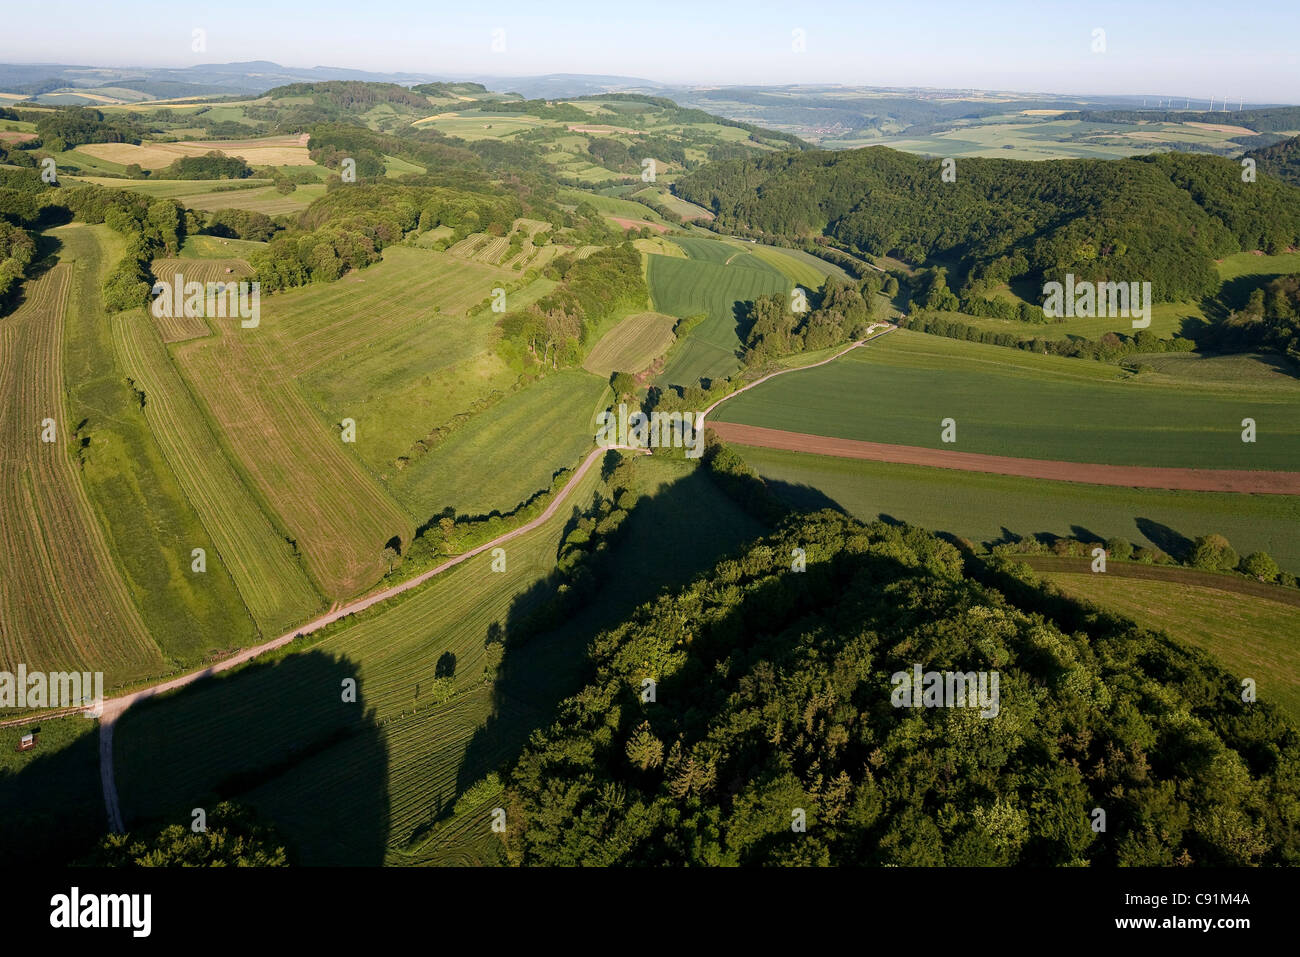 Aerial view of fertile landscape, Weser Hills, Lower Saxony, Germany - Stock Image